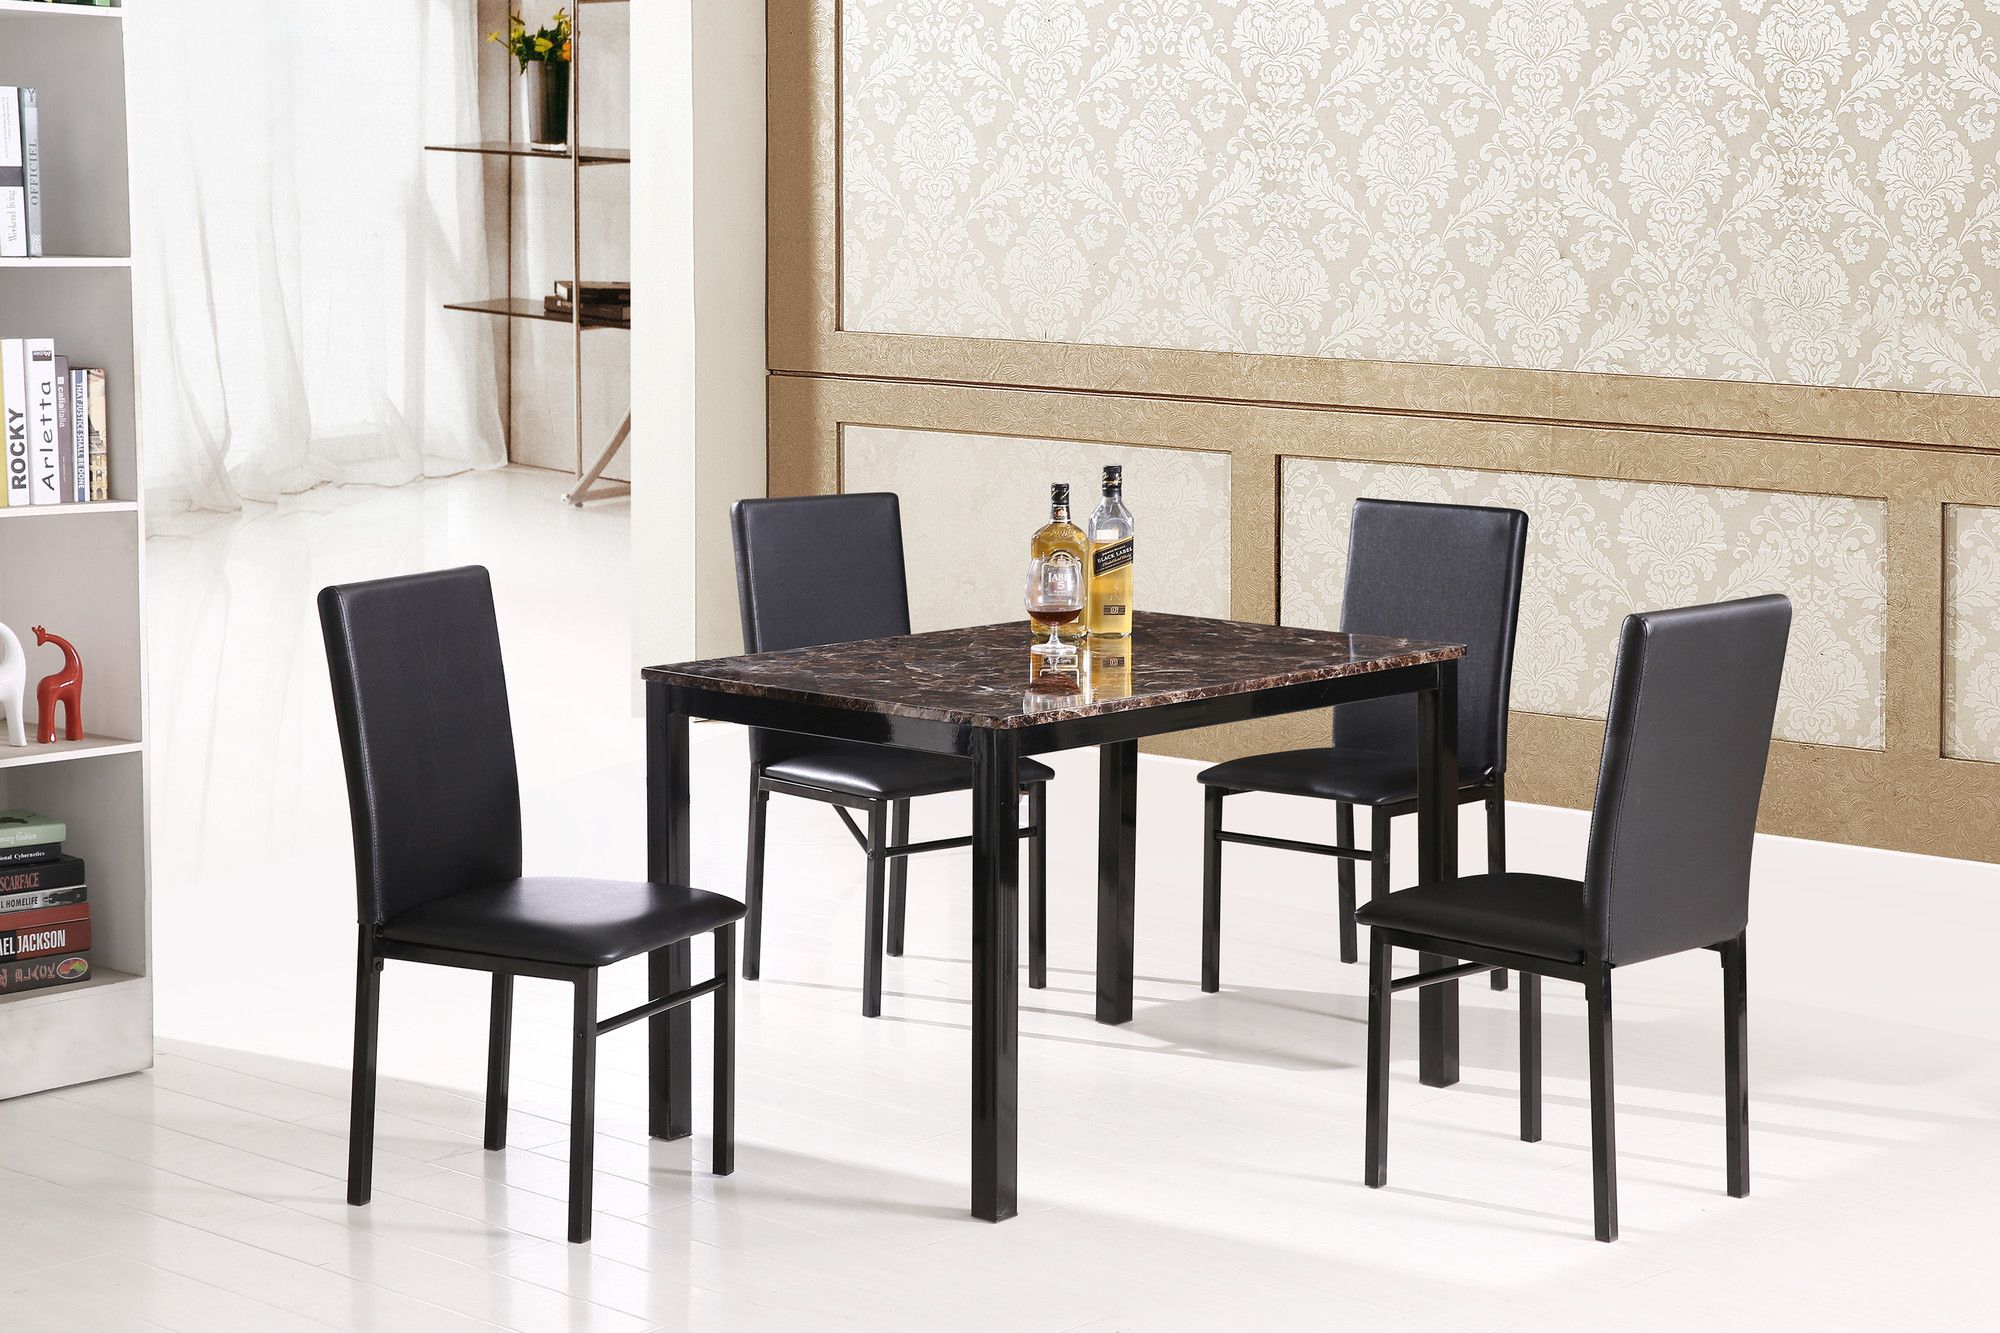 Marble Dining Table Set, Furniture Regarding Calla 5 Piece Dining Sets (#12 of 20)